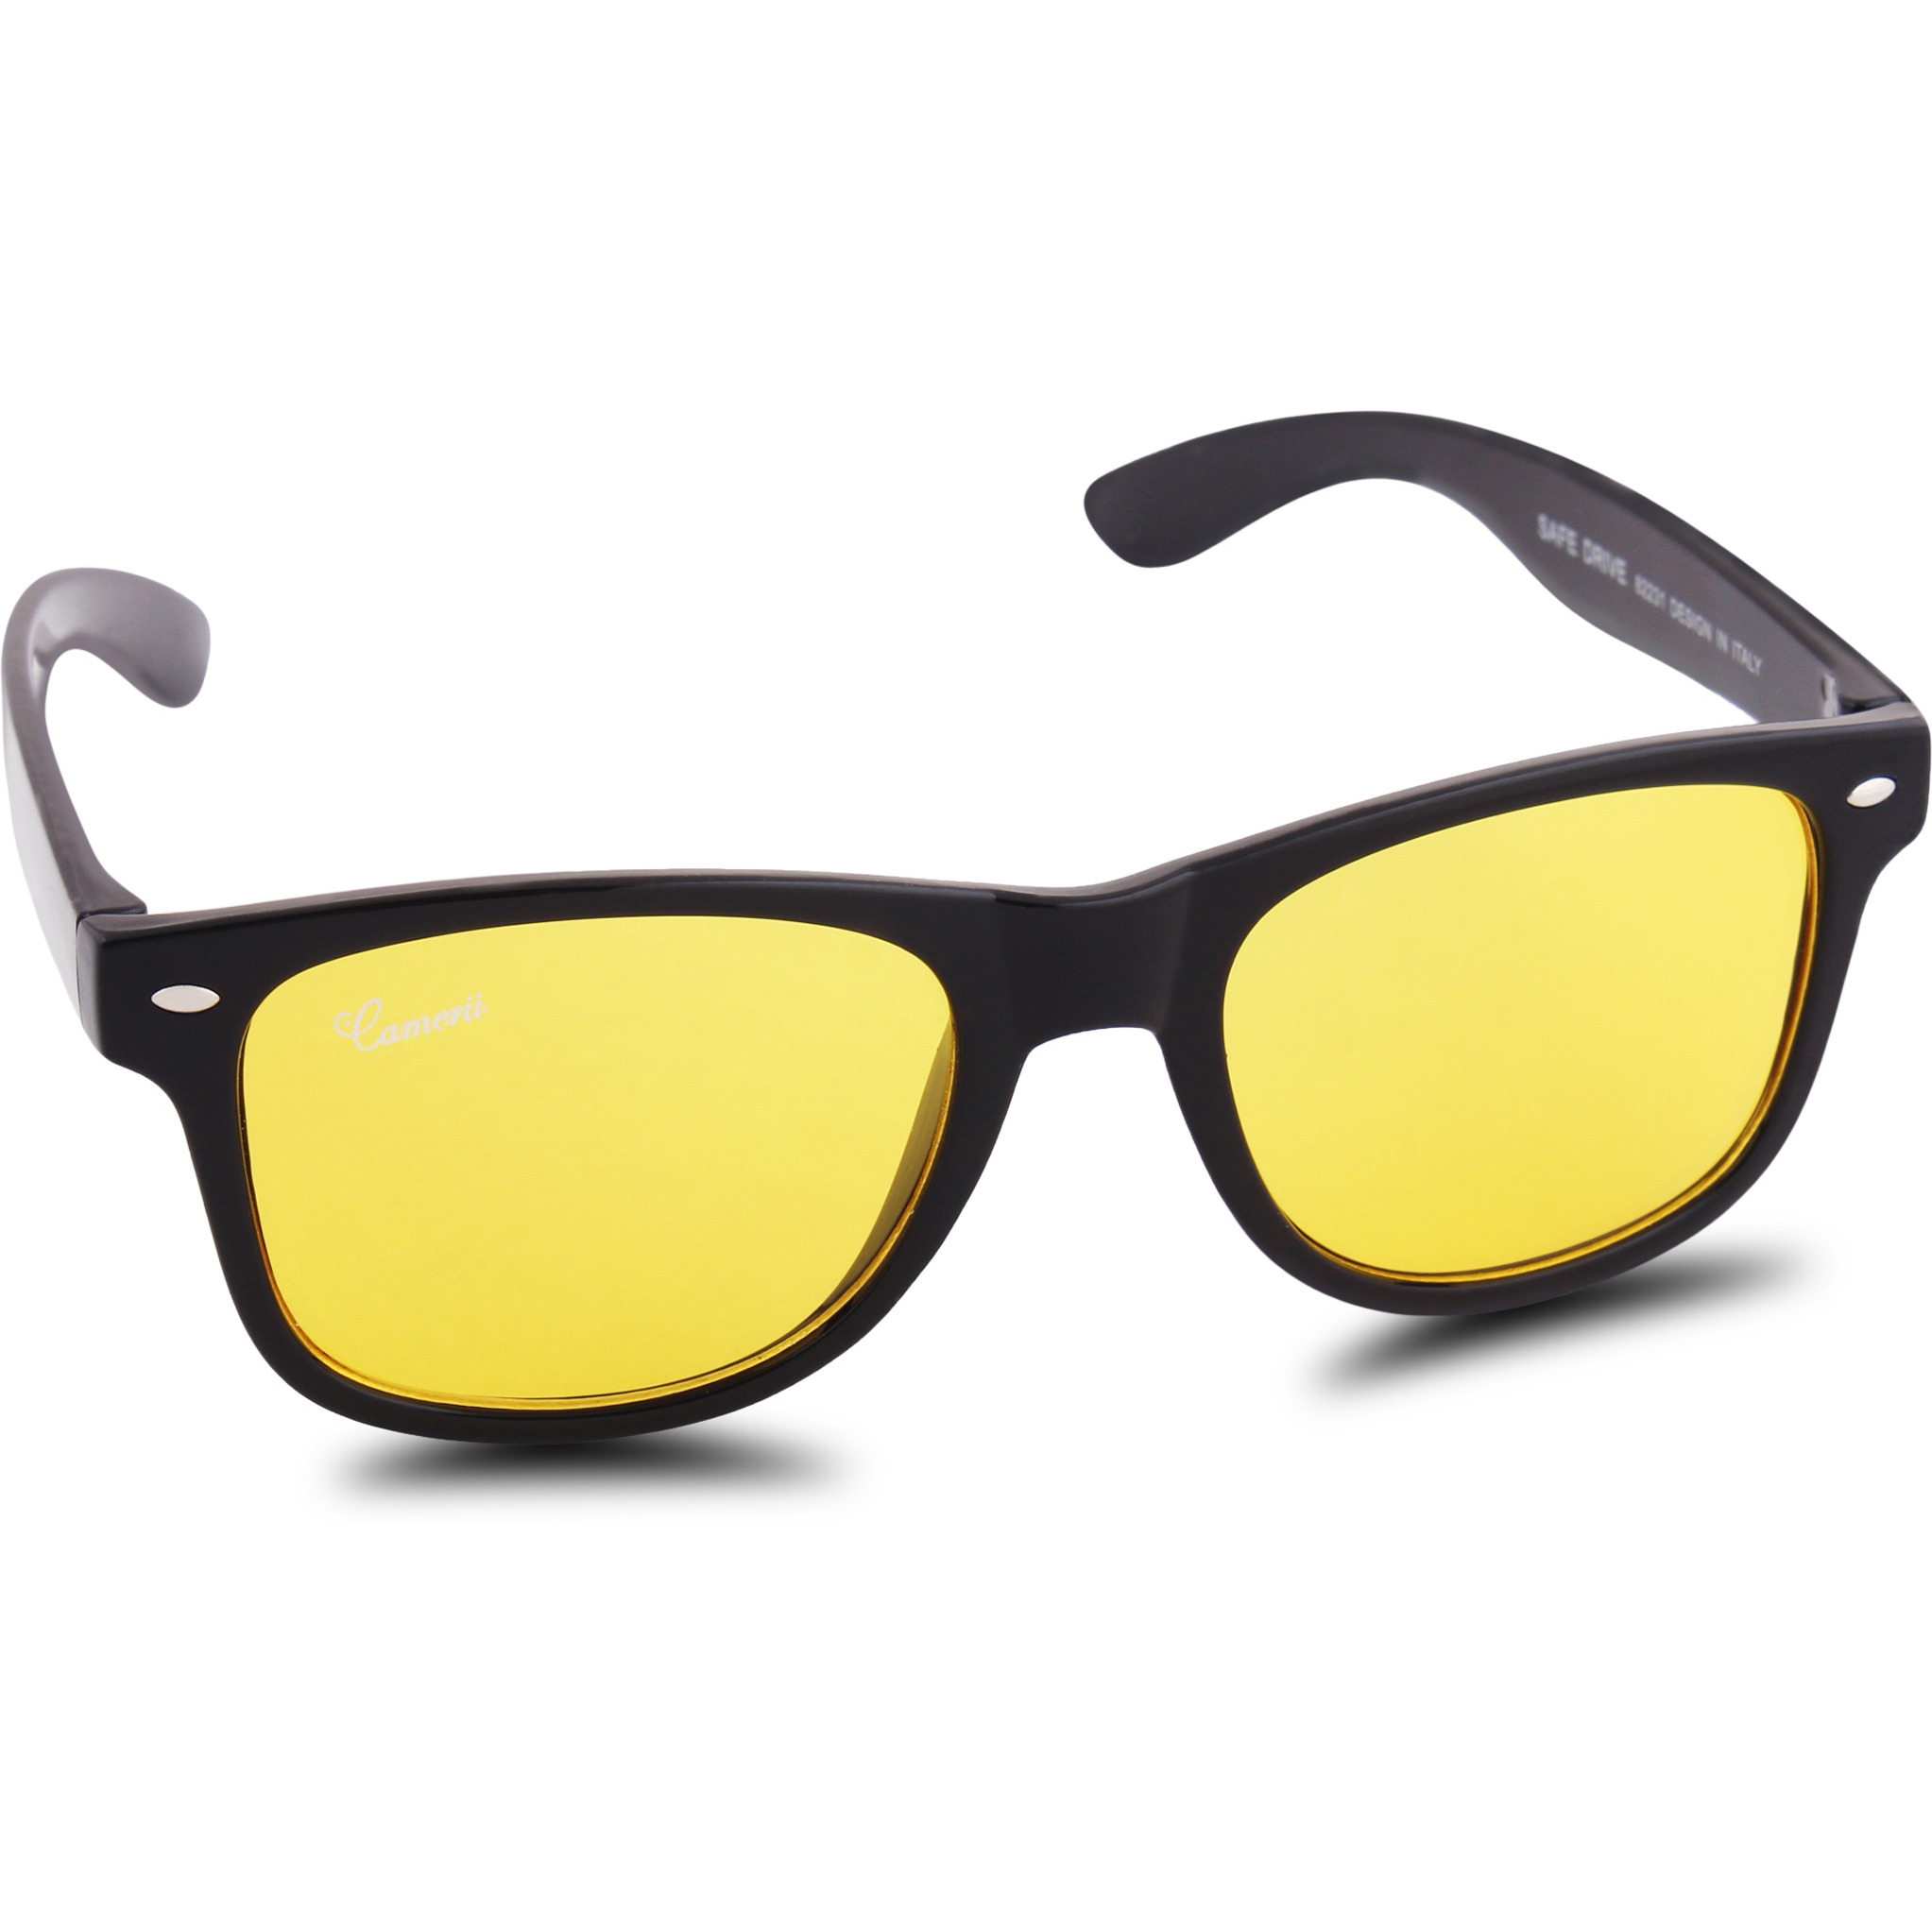 470874d426 Buy Online Camerii Glossy Yellow Oval Sunglasses from USA - Zifiti.com -  Page